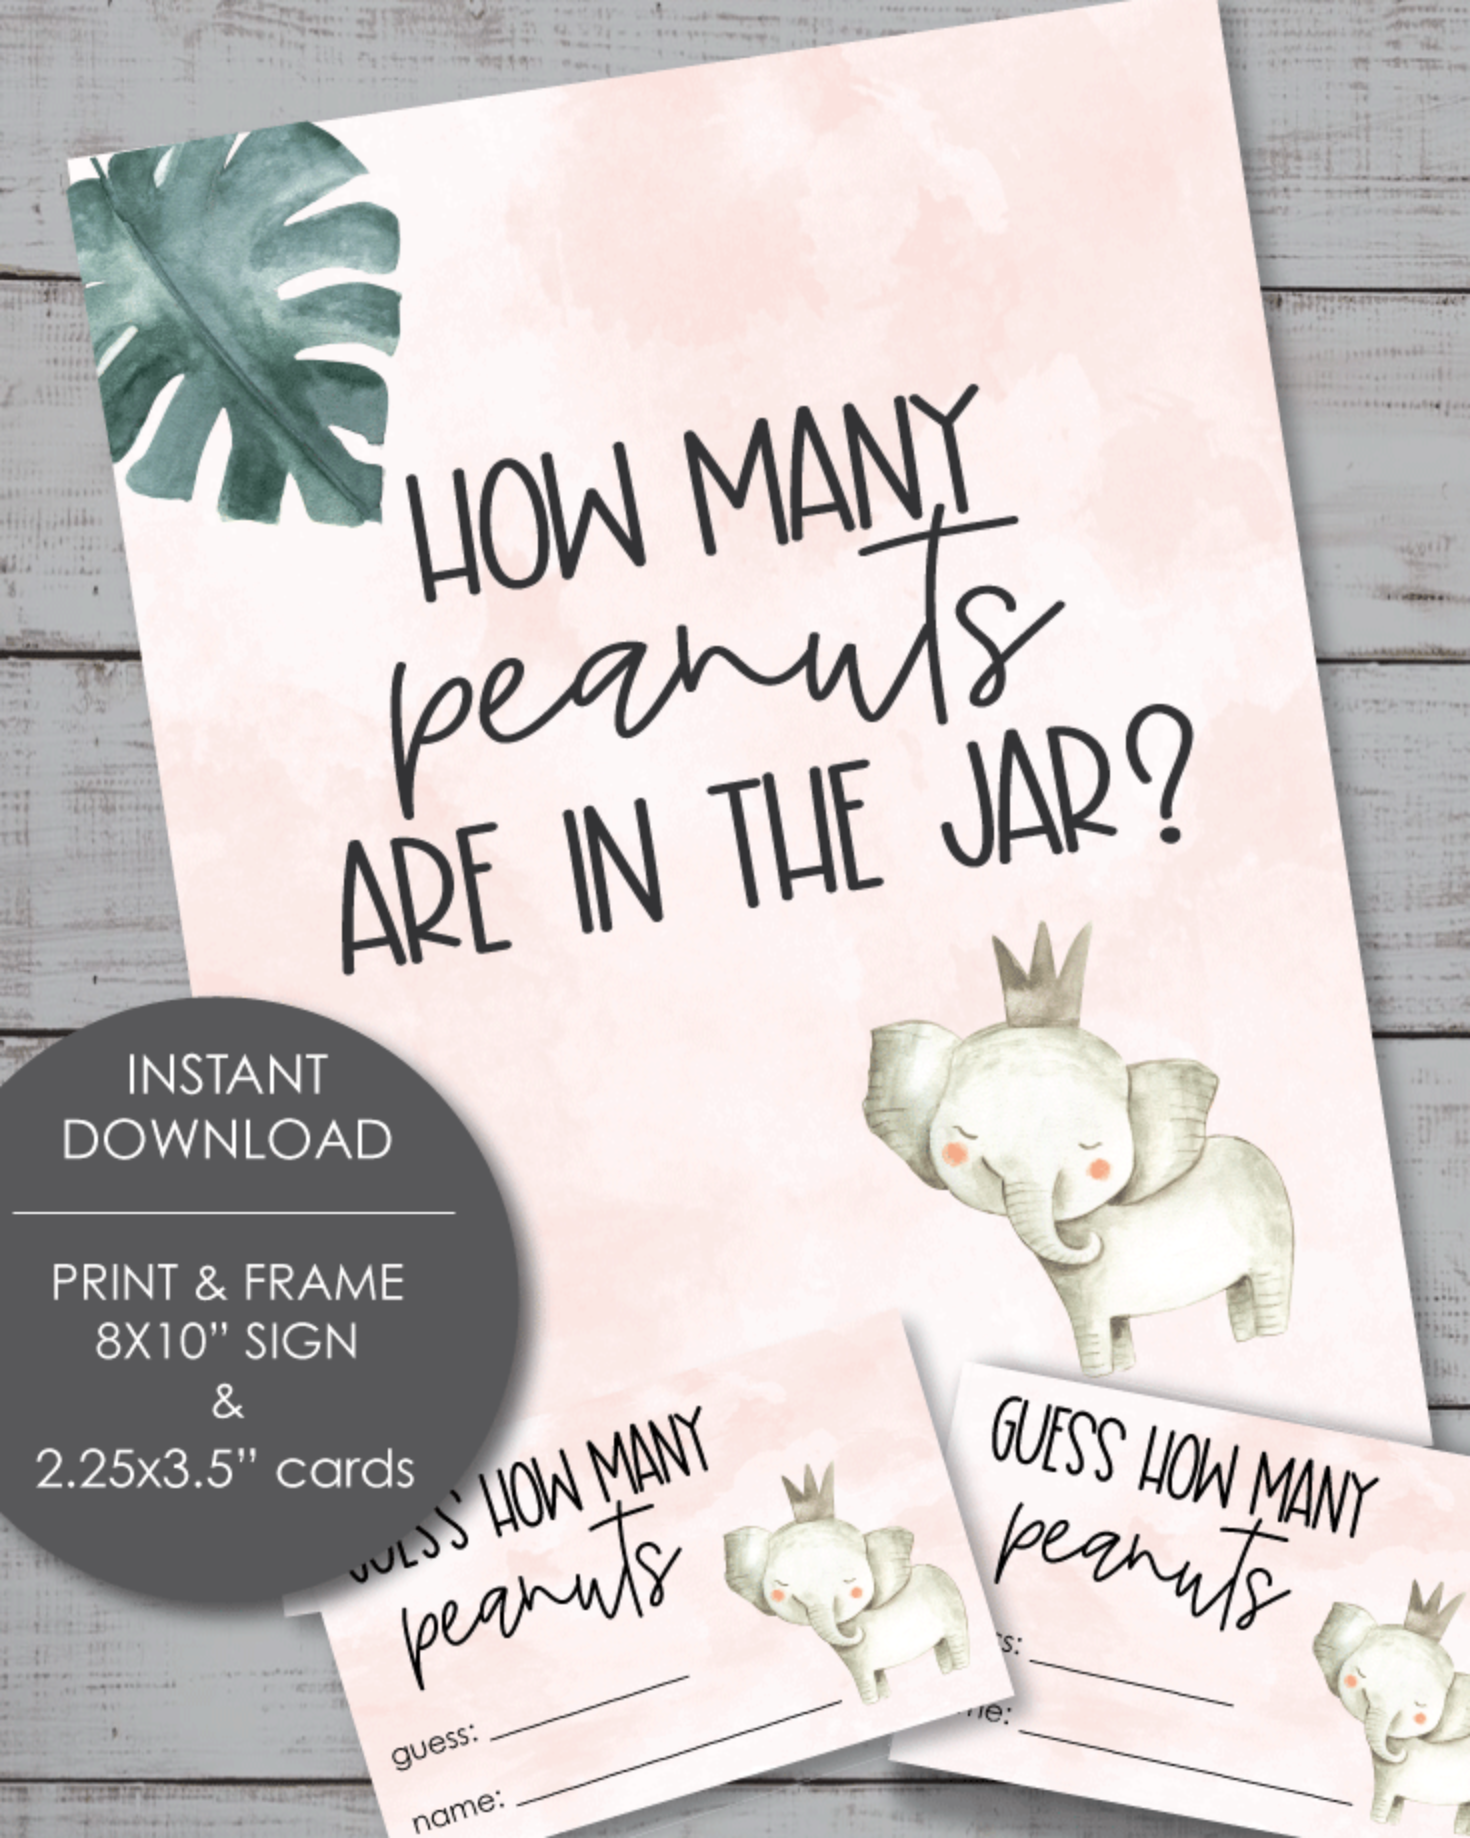 Printable Guess How Many Peanuts Baby Shower Game - Pink Elephant Theme